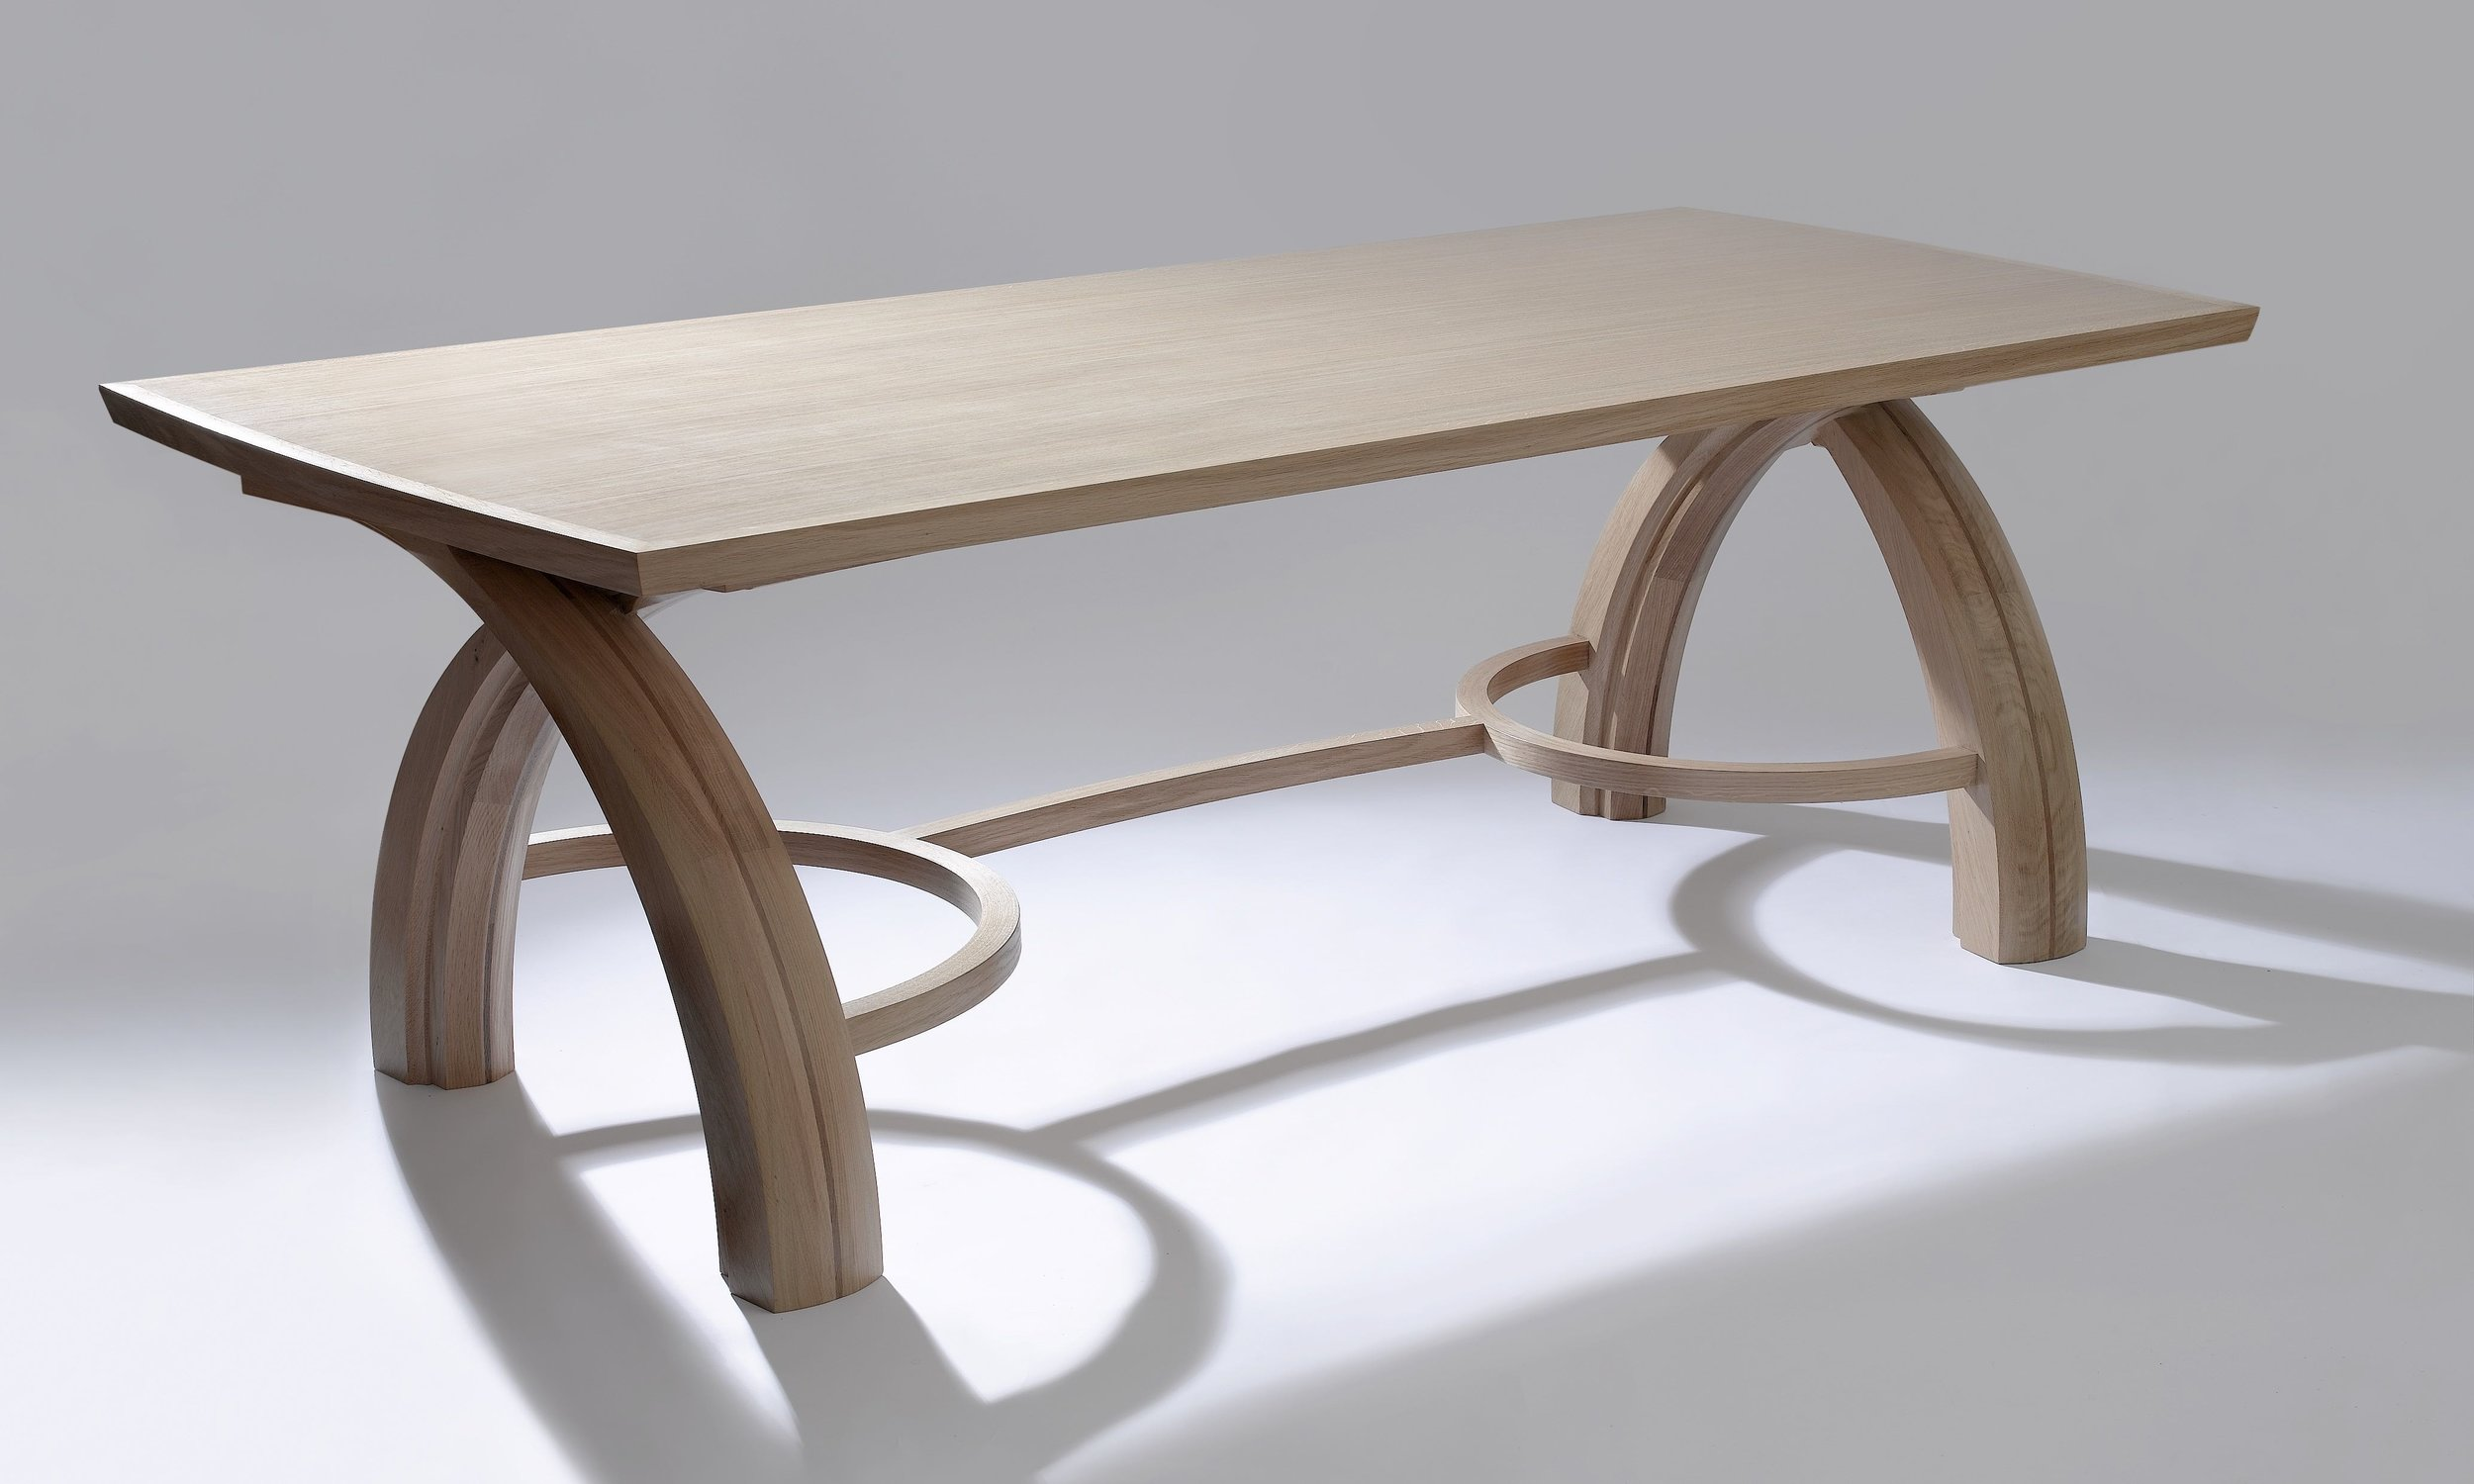 AWARD WINNING TABLE  THE SAGRADA TABLE IS ONE OF ONLY A FEW PIECES OF FURNITURE NATIONWIDE TO BE GIVEN A GUILD MARK BY THE WORSHIPFUL COMPANY OF FURNITURE MAKERS